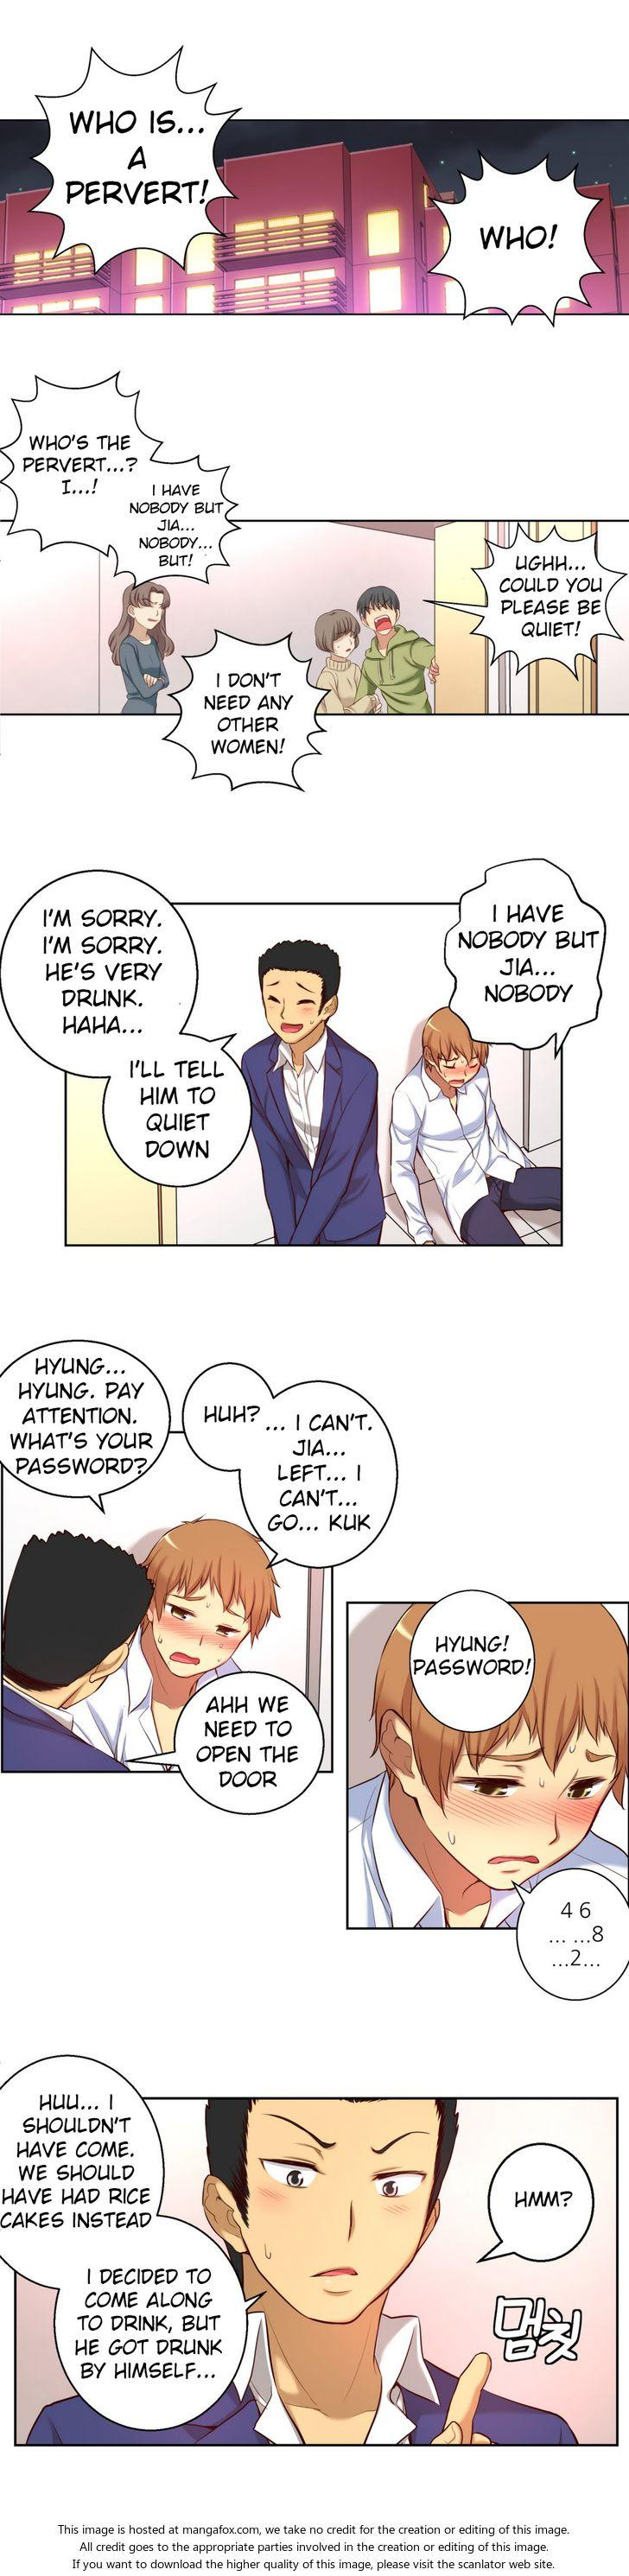 [Donggul Gom] She is Young (English) Part 1/2 341